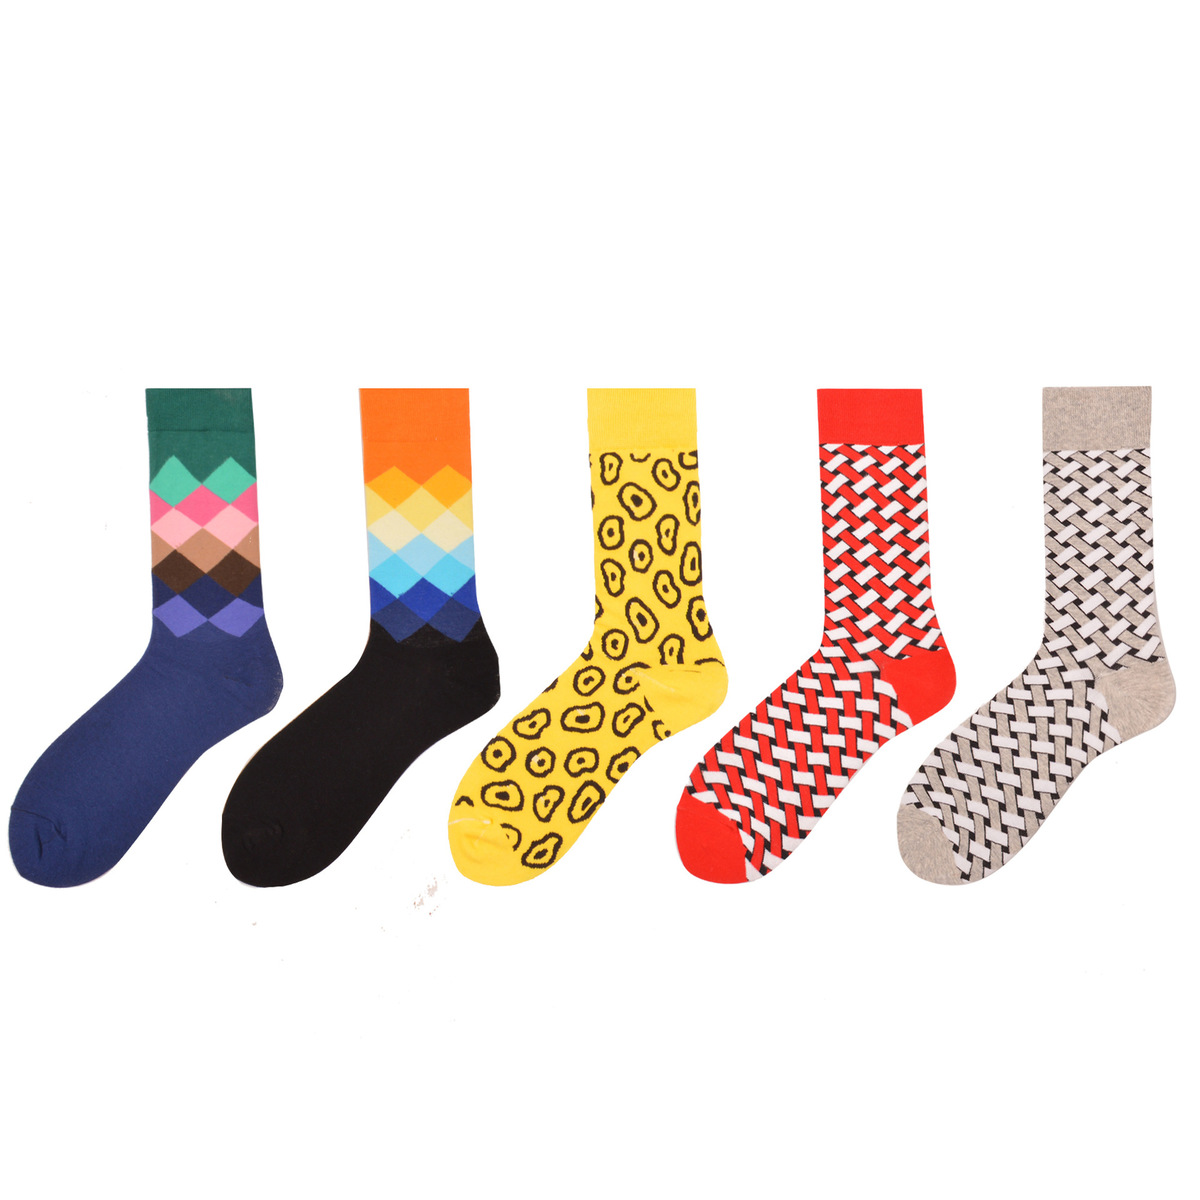 PEONFLY 5Pairs/lot Mens Funny Colorful Combed Cotton Socks Red Argyle Pack Casual Happy Socks Dress Wedding Socks